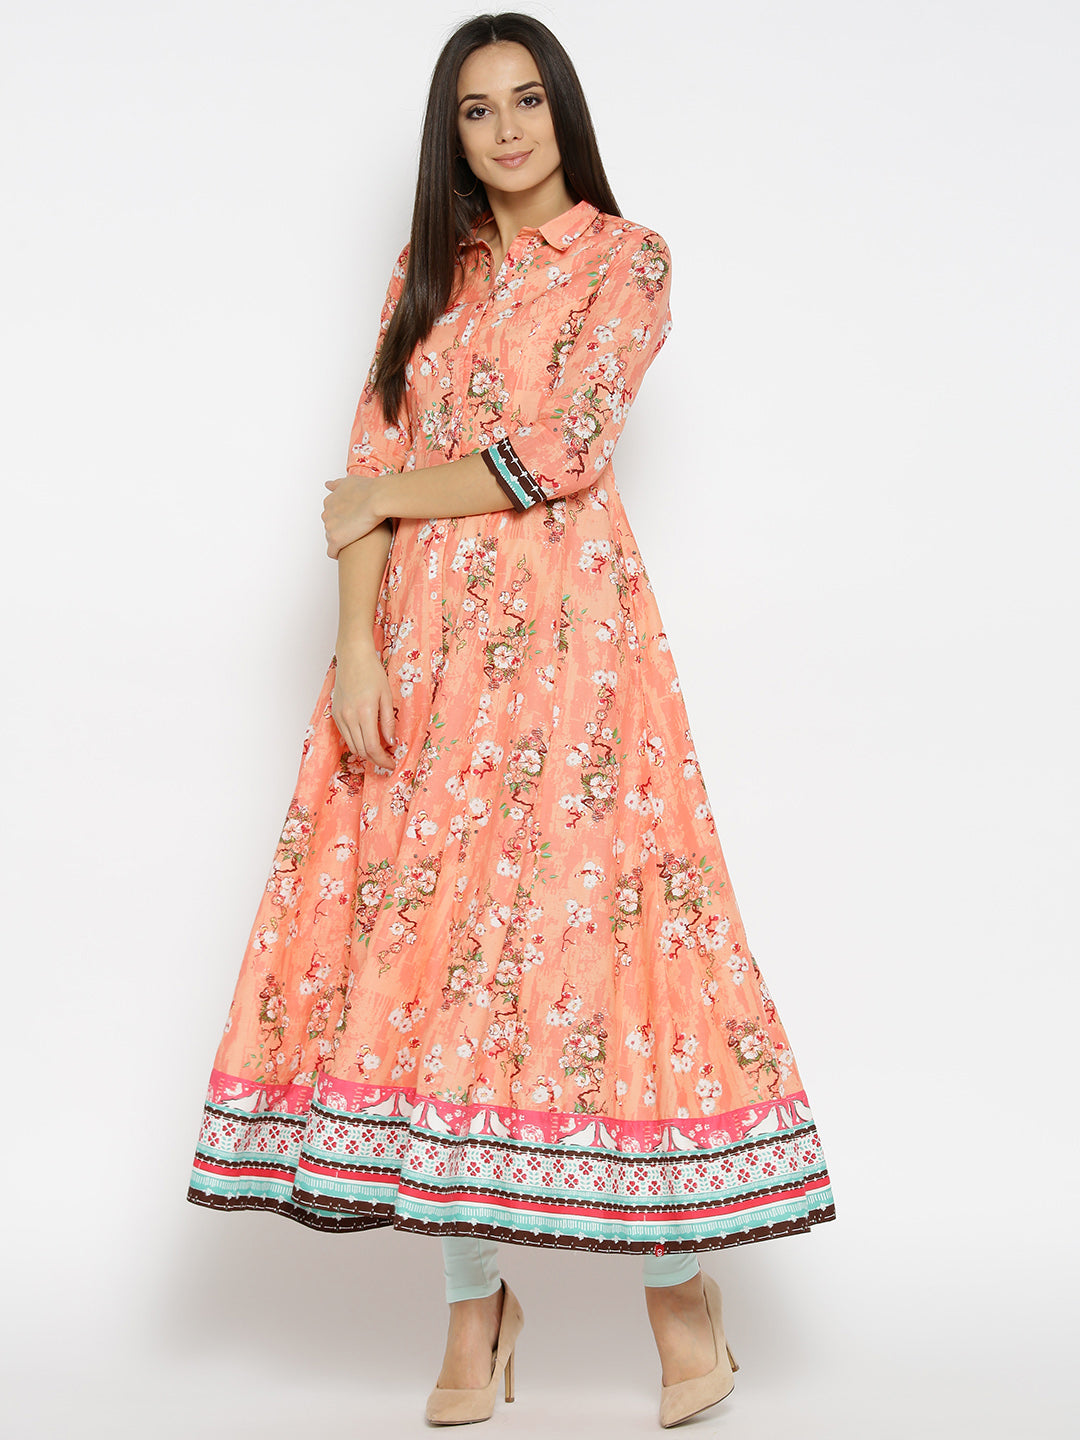 https://ladyindia.com/products/floral-print-long-anarkalis-peach-coloured-printed-anarkali-kurta?variant=7876730159148